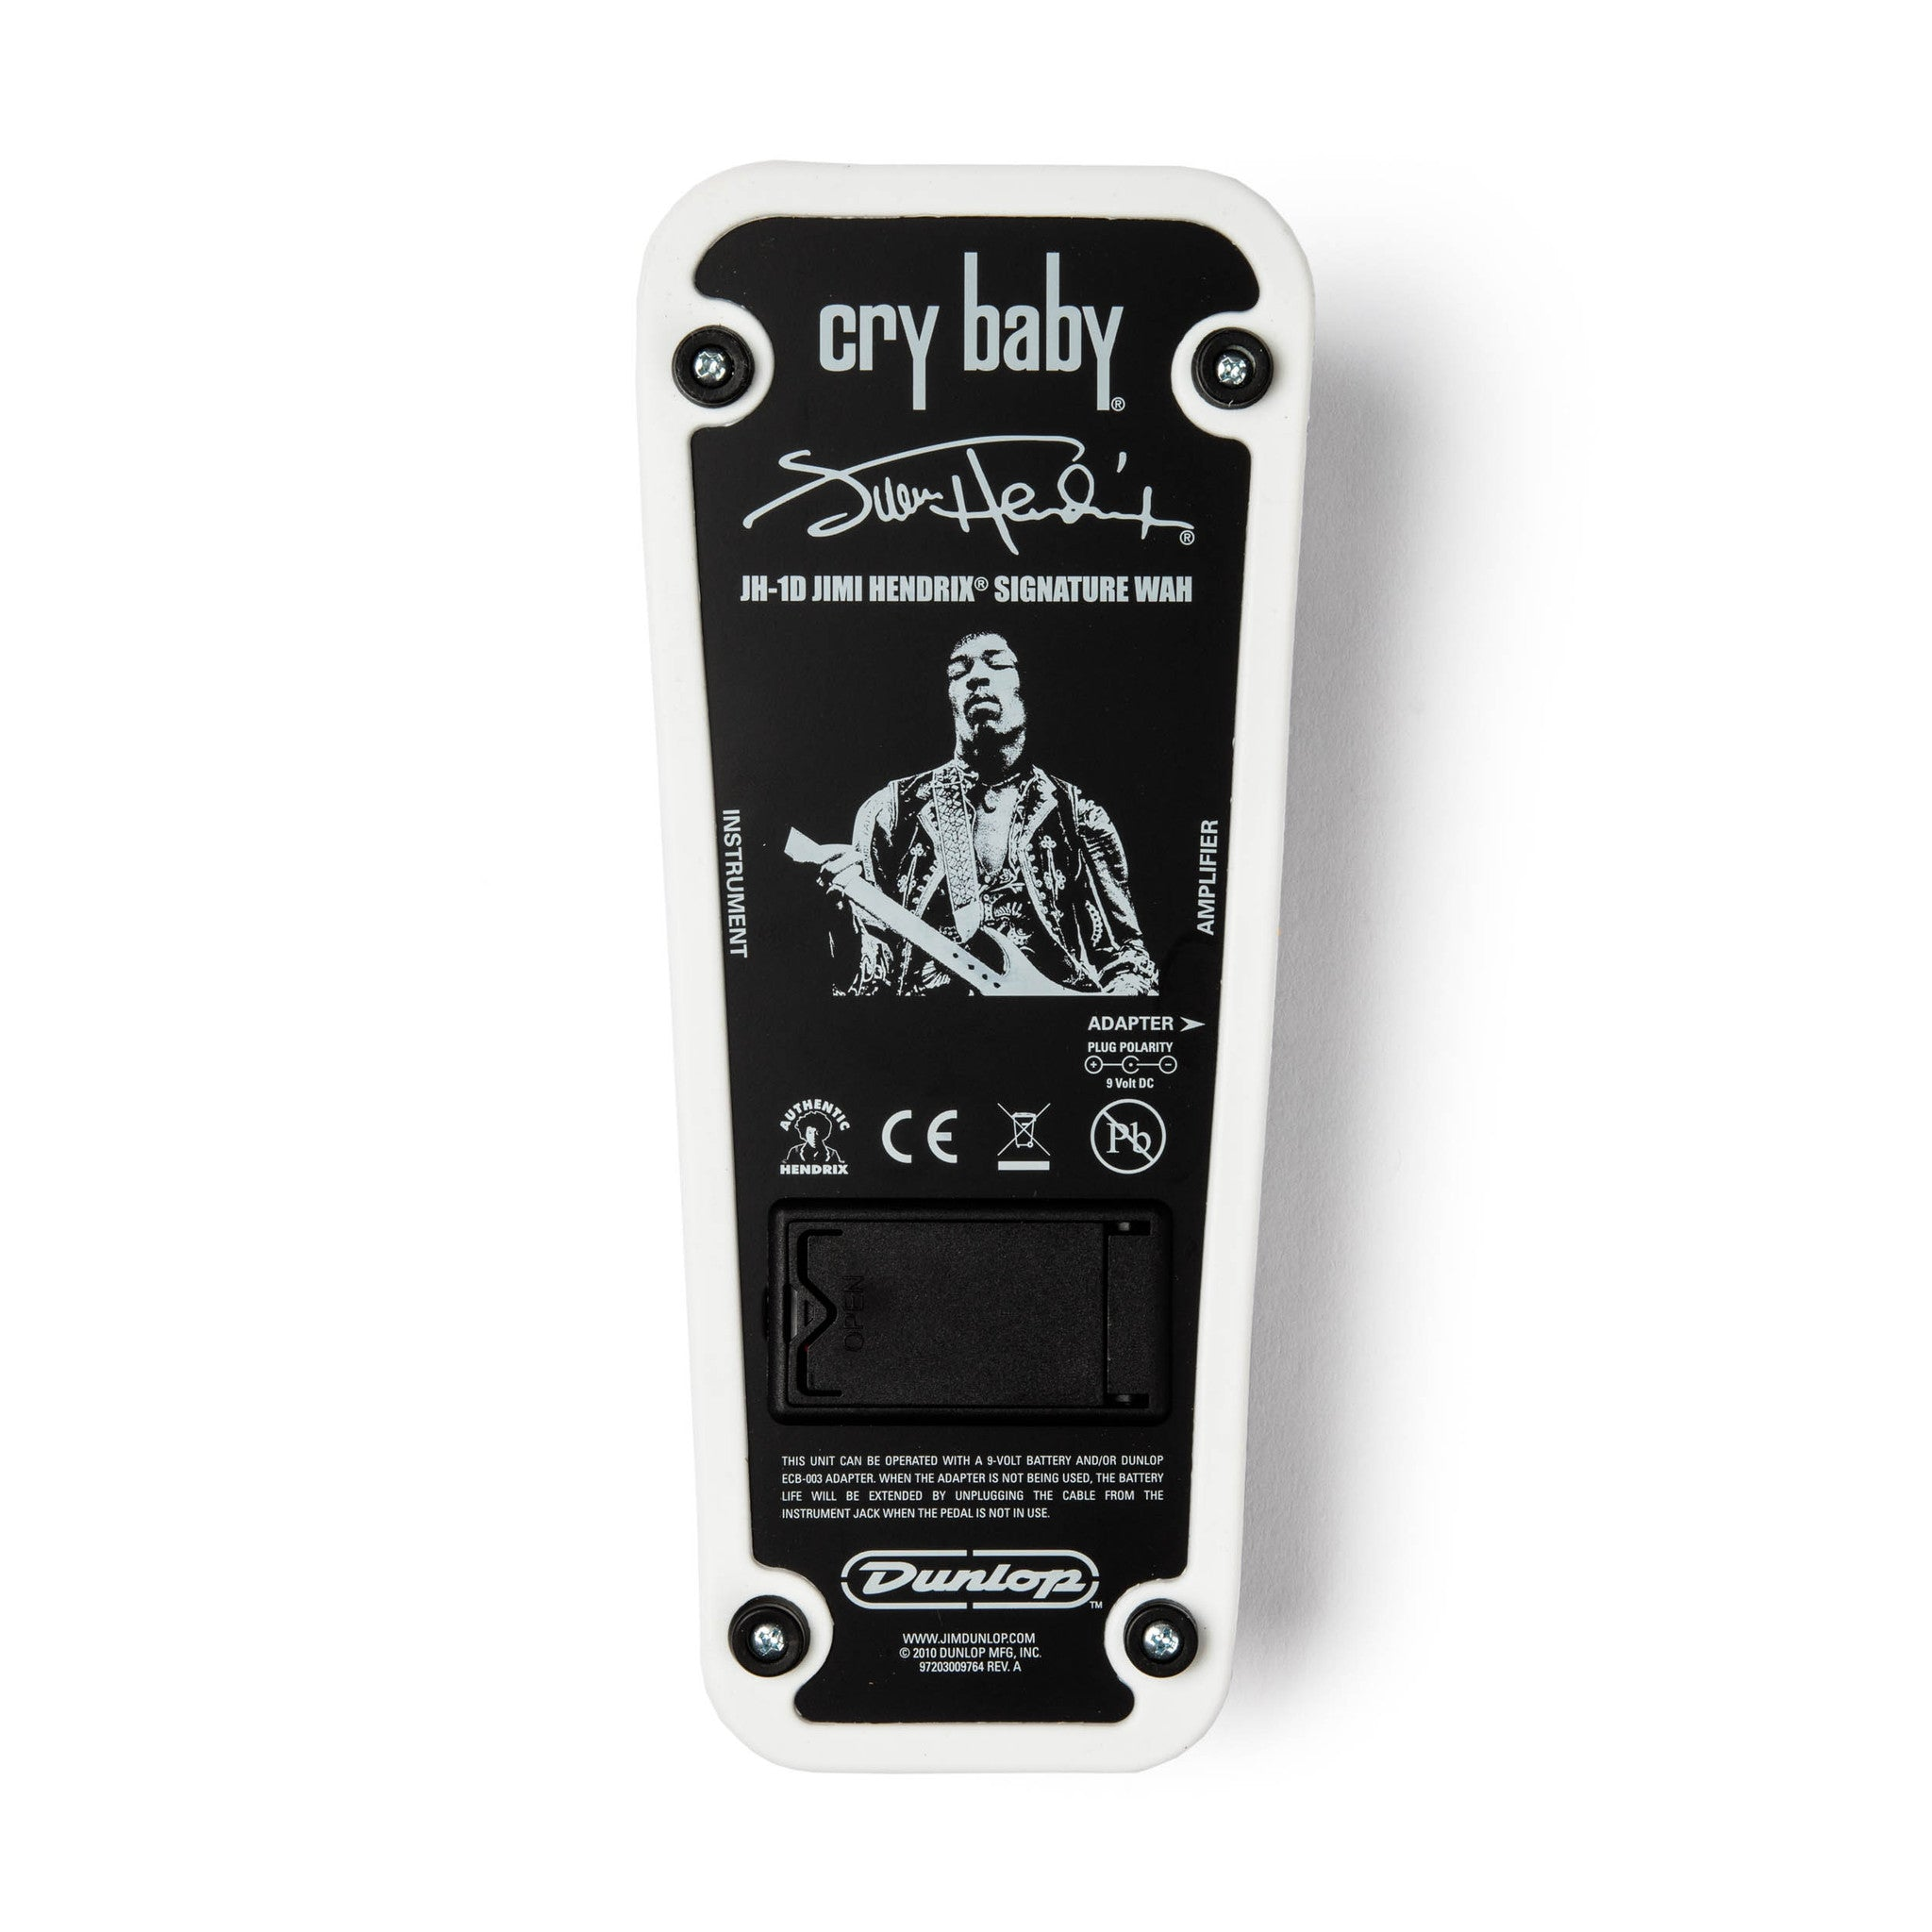 dunlop jh1d jimi hendrix signature cry baby wah pedal music village usa. Black Bedroom Furniture Sets. Home Design Ideas